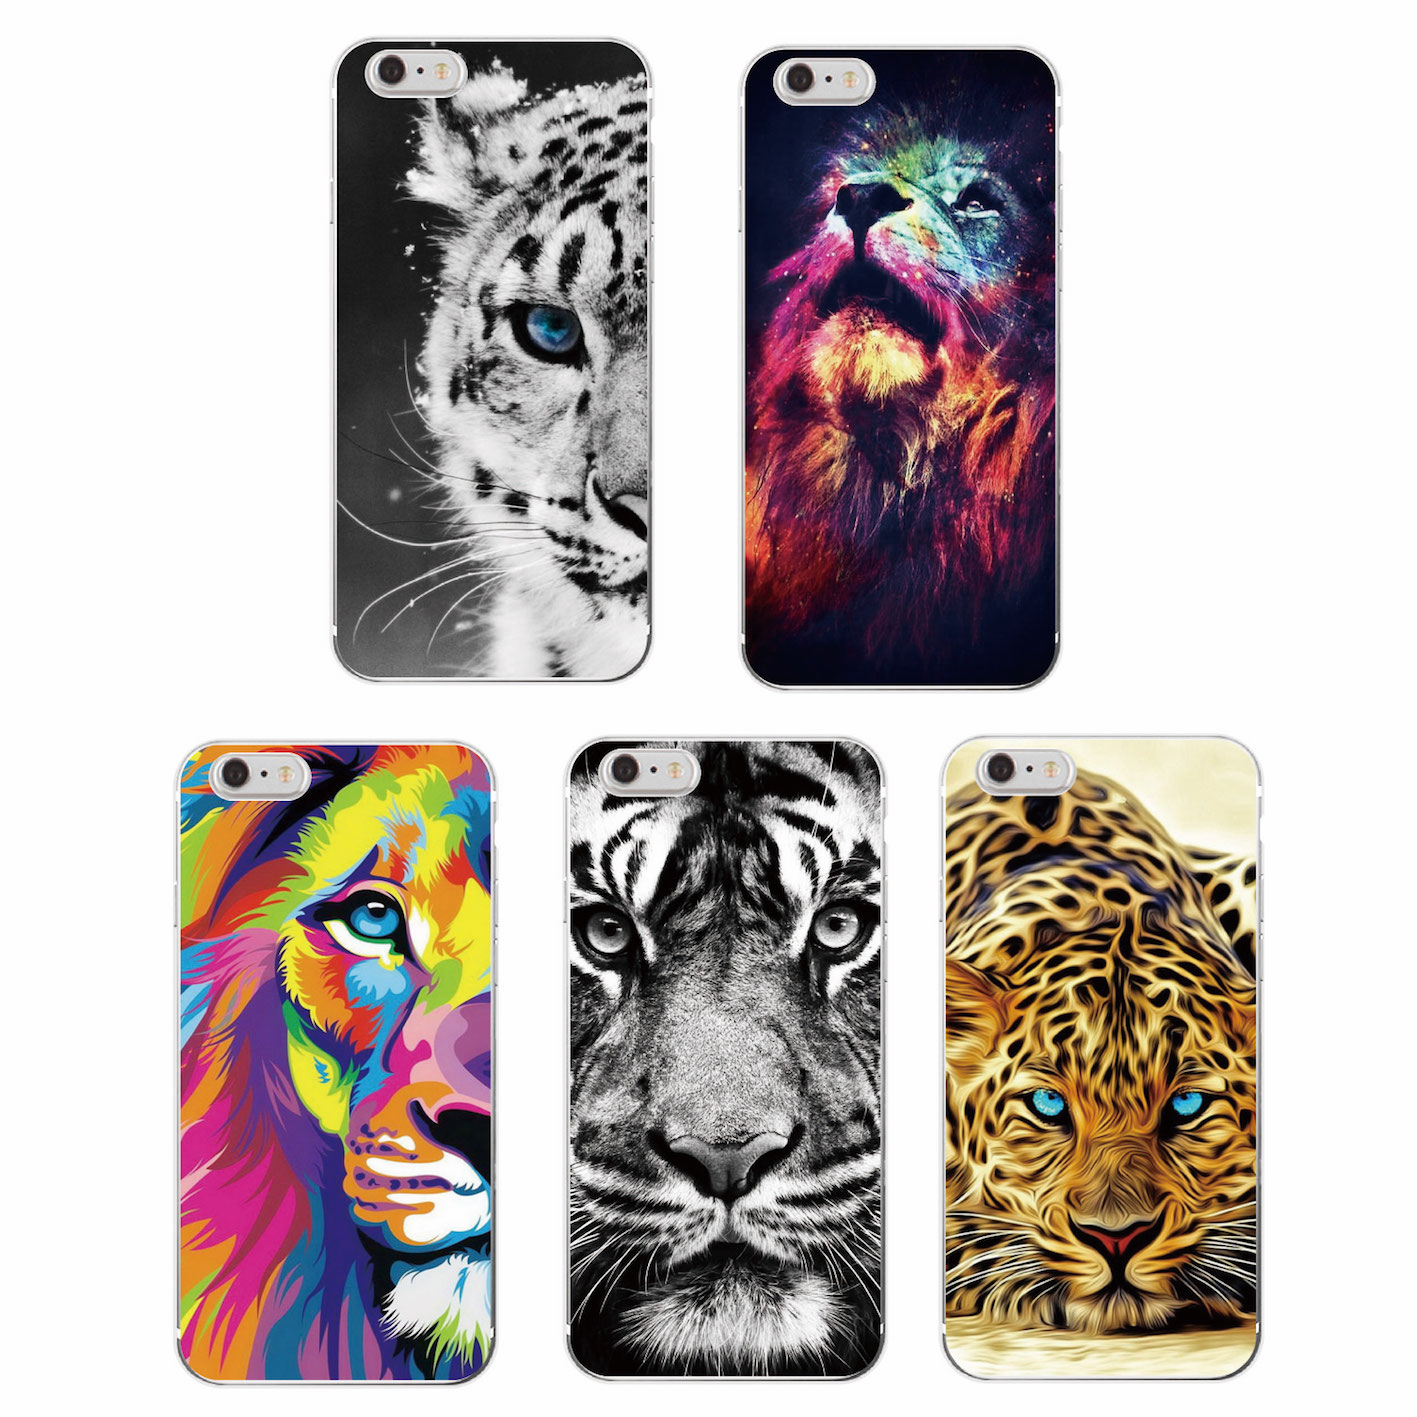 Mode Löwe Tiger Panther Leopard Soft Case Coque Fundas Für iPhone 11 7 7Plus 6 6S 5S 8 8Plus X XS Max SAMSUNG GALSXY S8 S8P